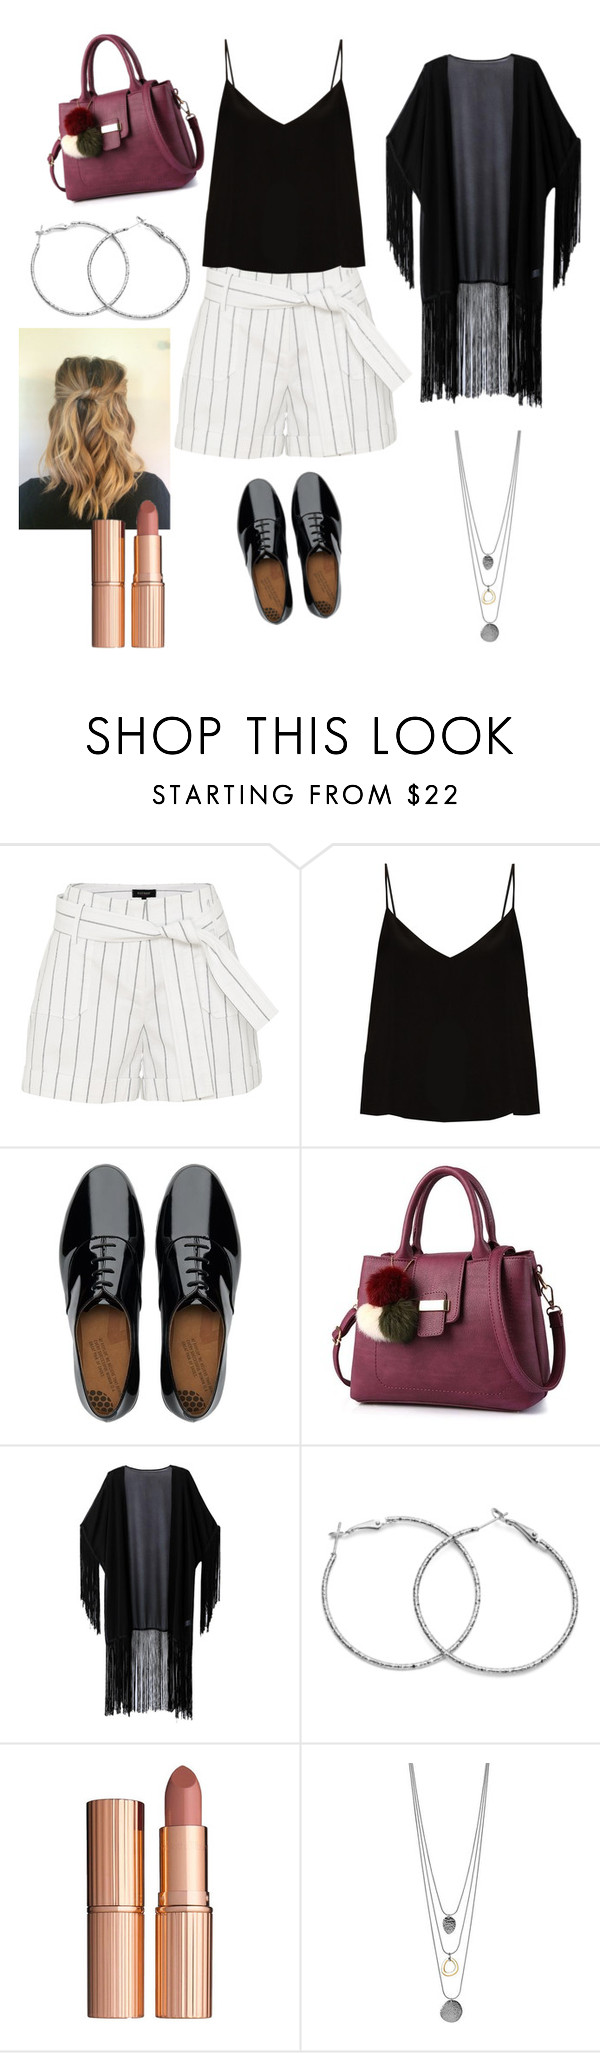 """Untitled #407"" by carolineccvi on Polyvore featuring Raey, FitFlop, WithChic and Charlotte Tilbury"